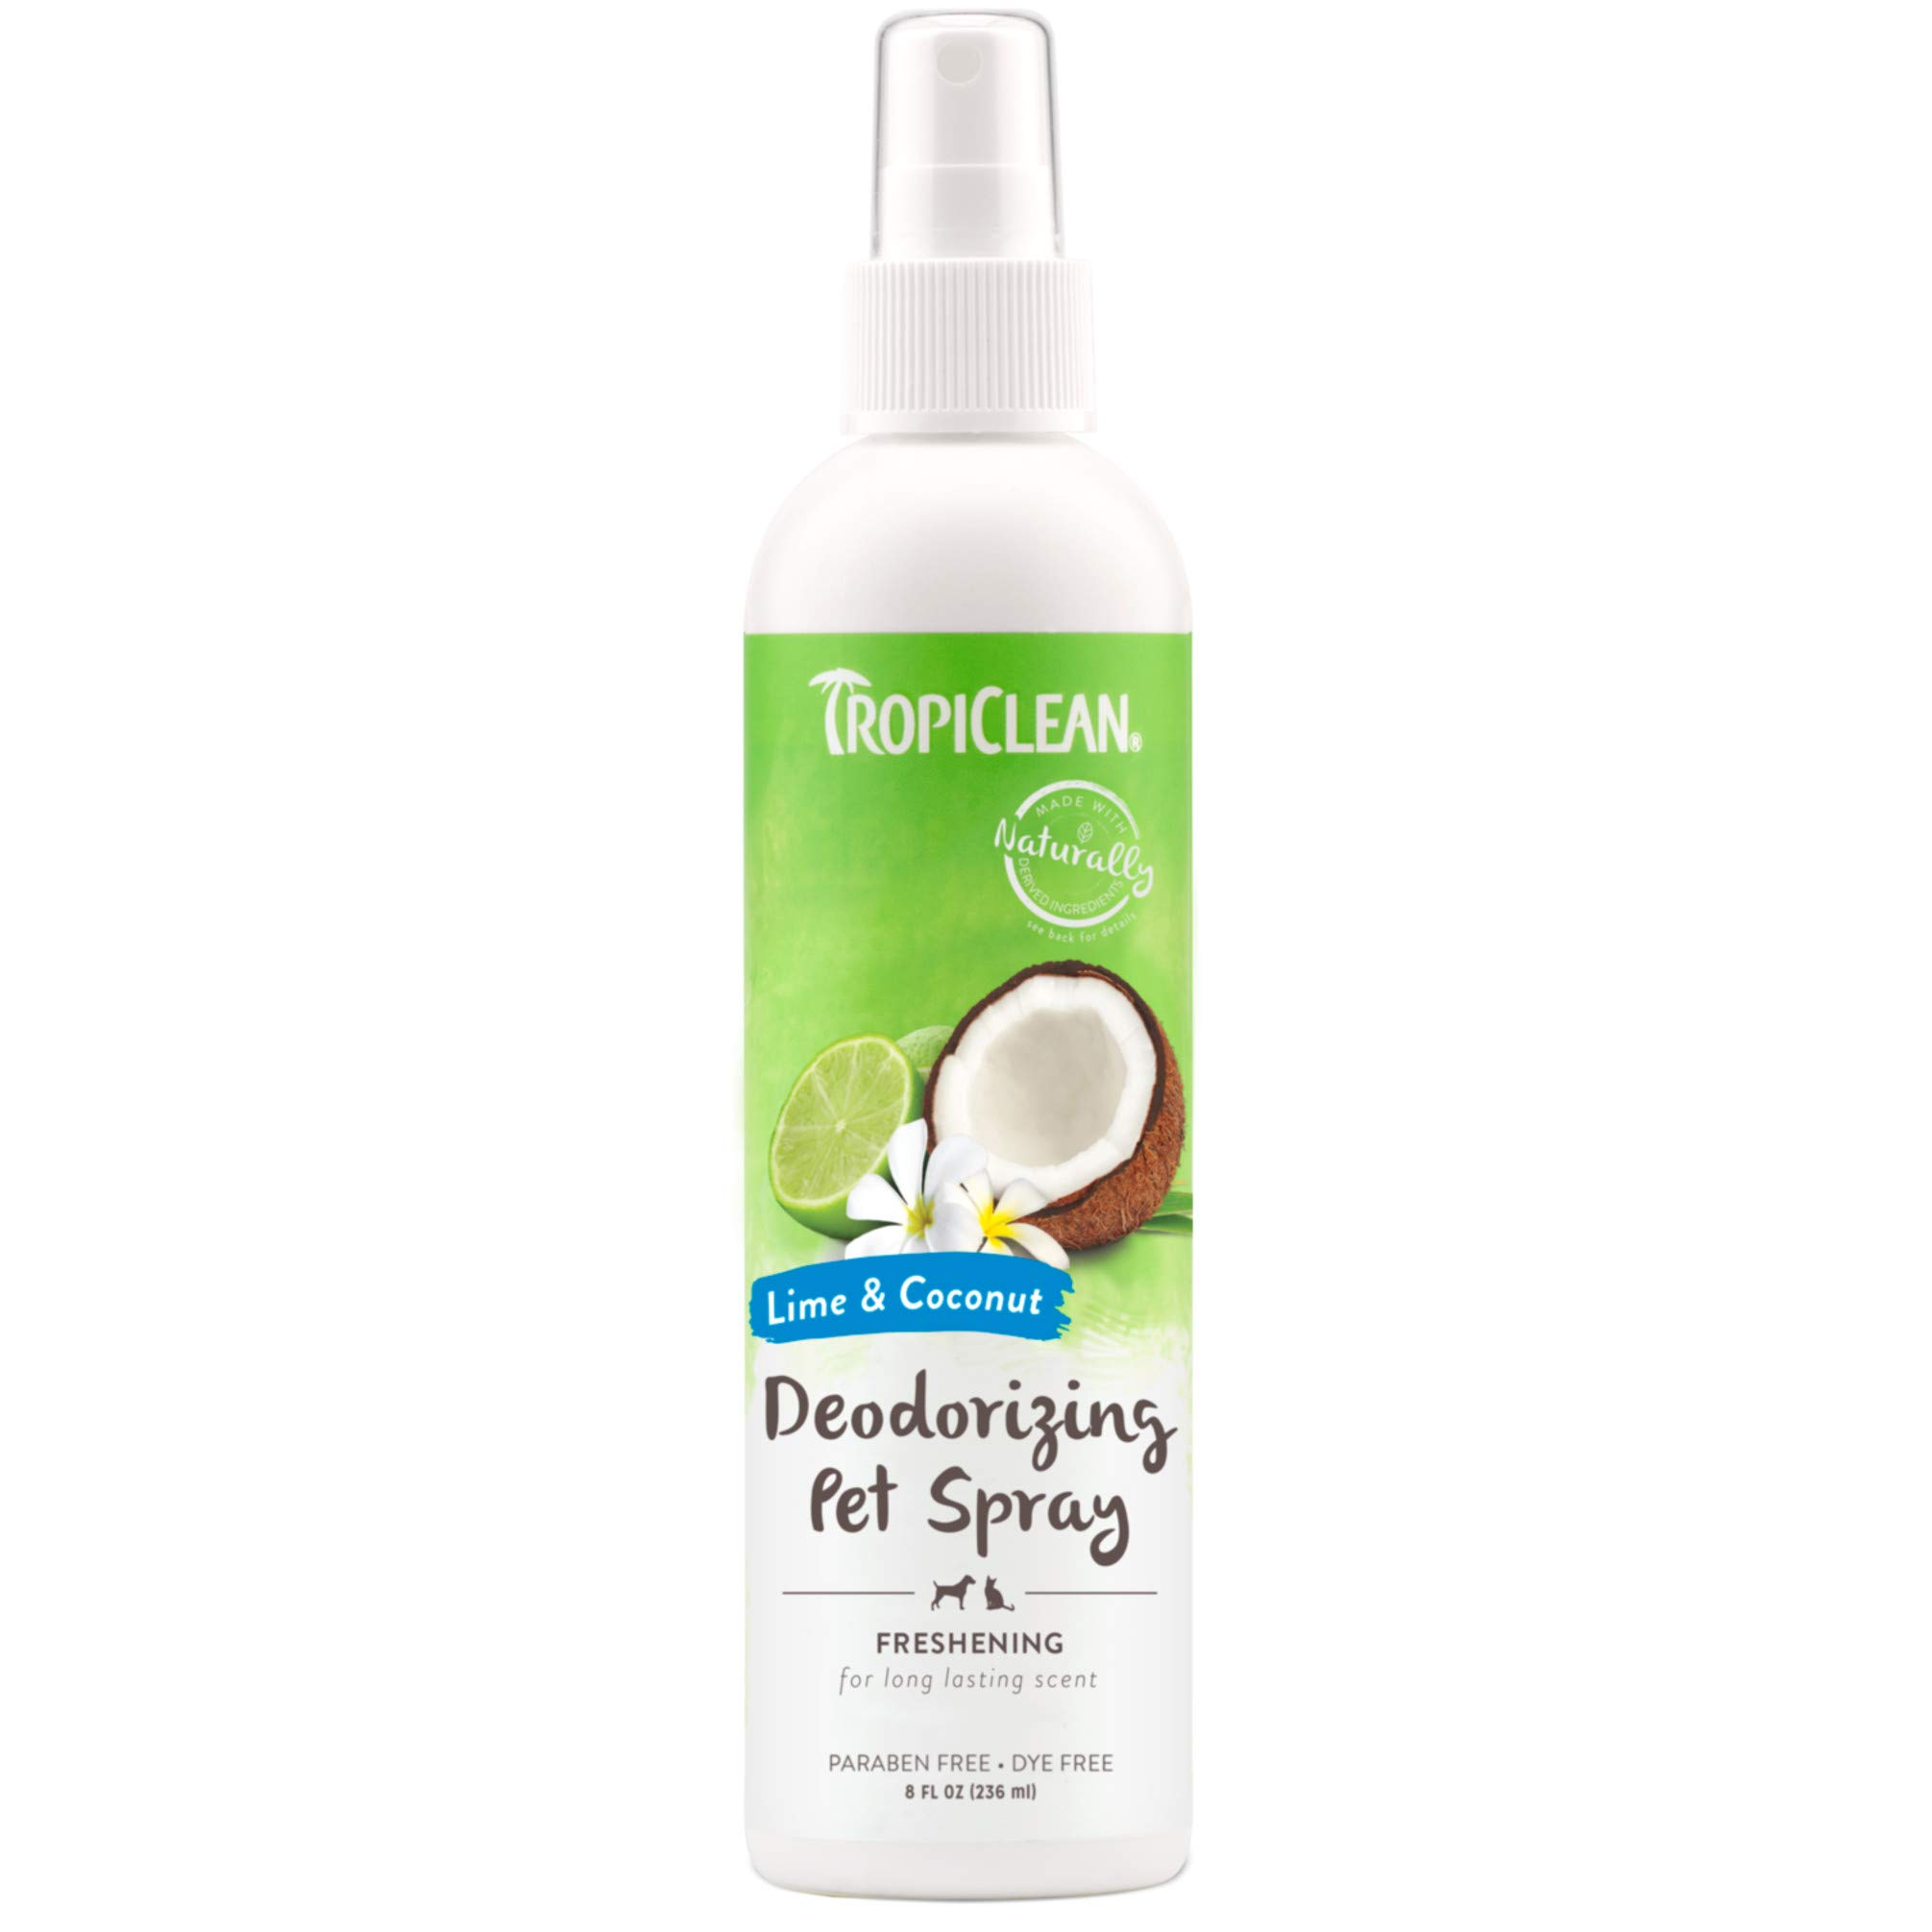 TropiClean Lime & Coconut Deodorizing Spray for Pets, 8oz, Made in USA by TropiClean